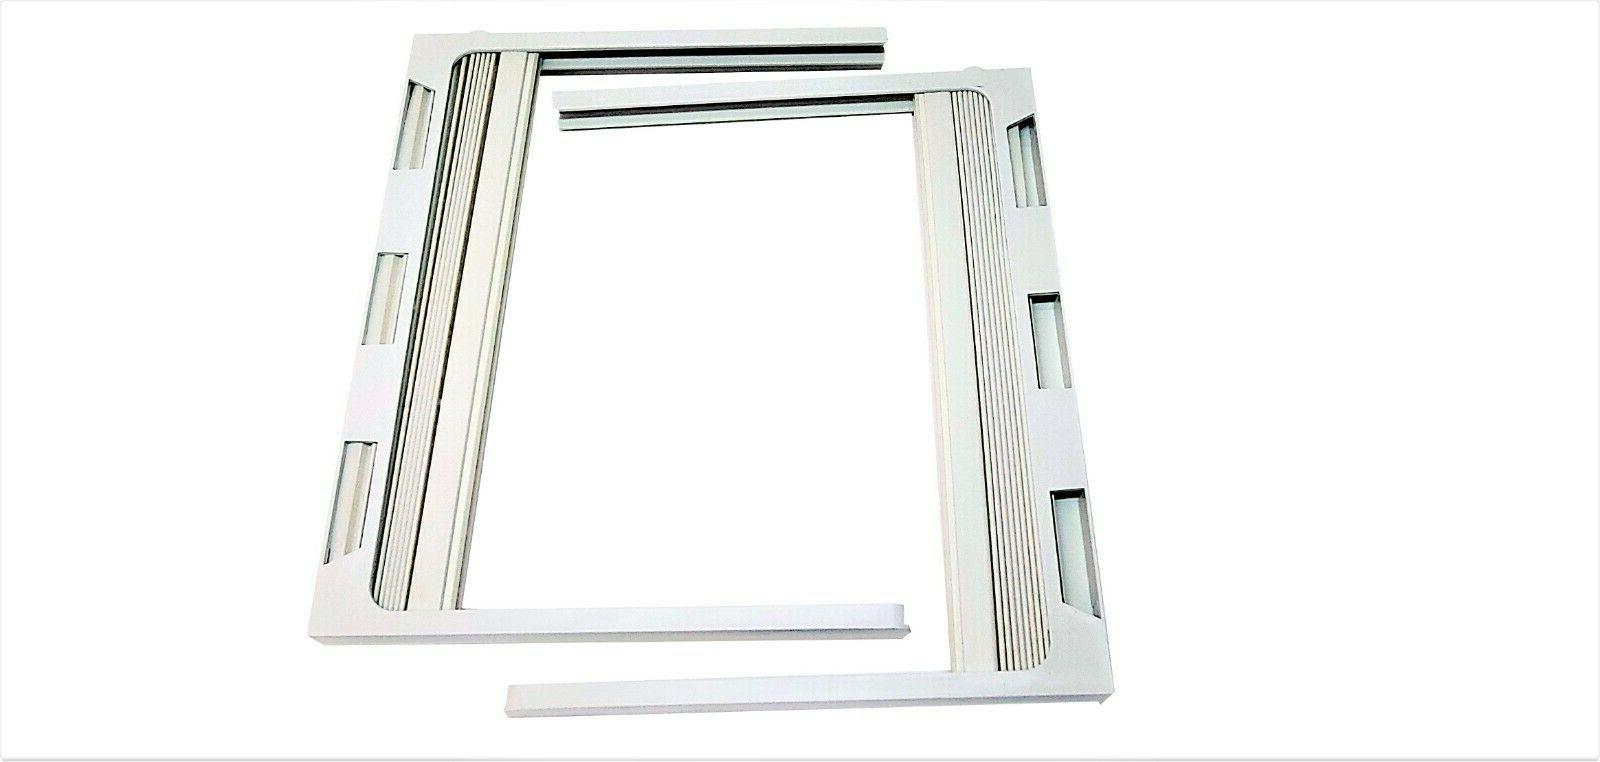 1 pair air conditioner window frames